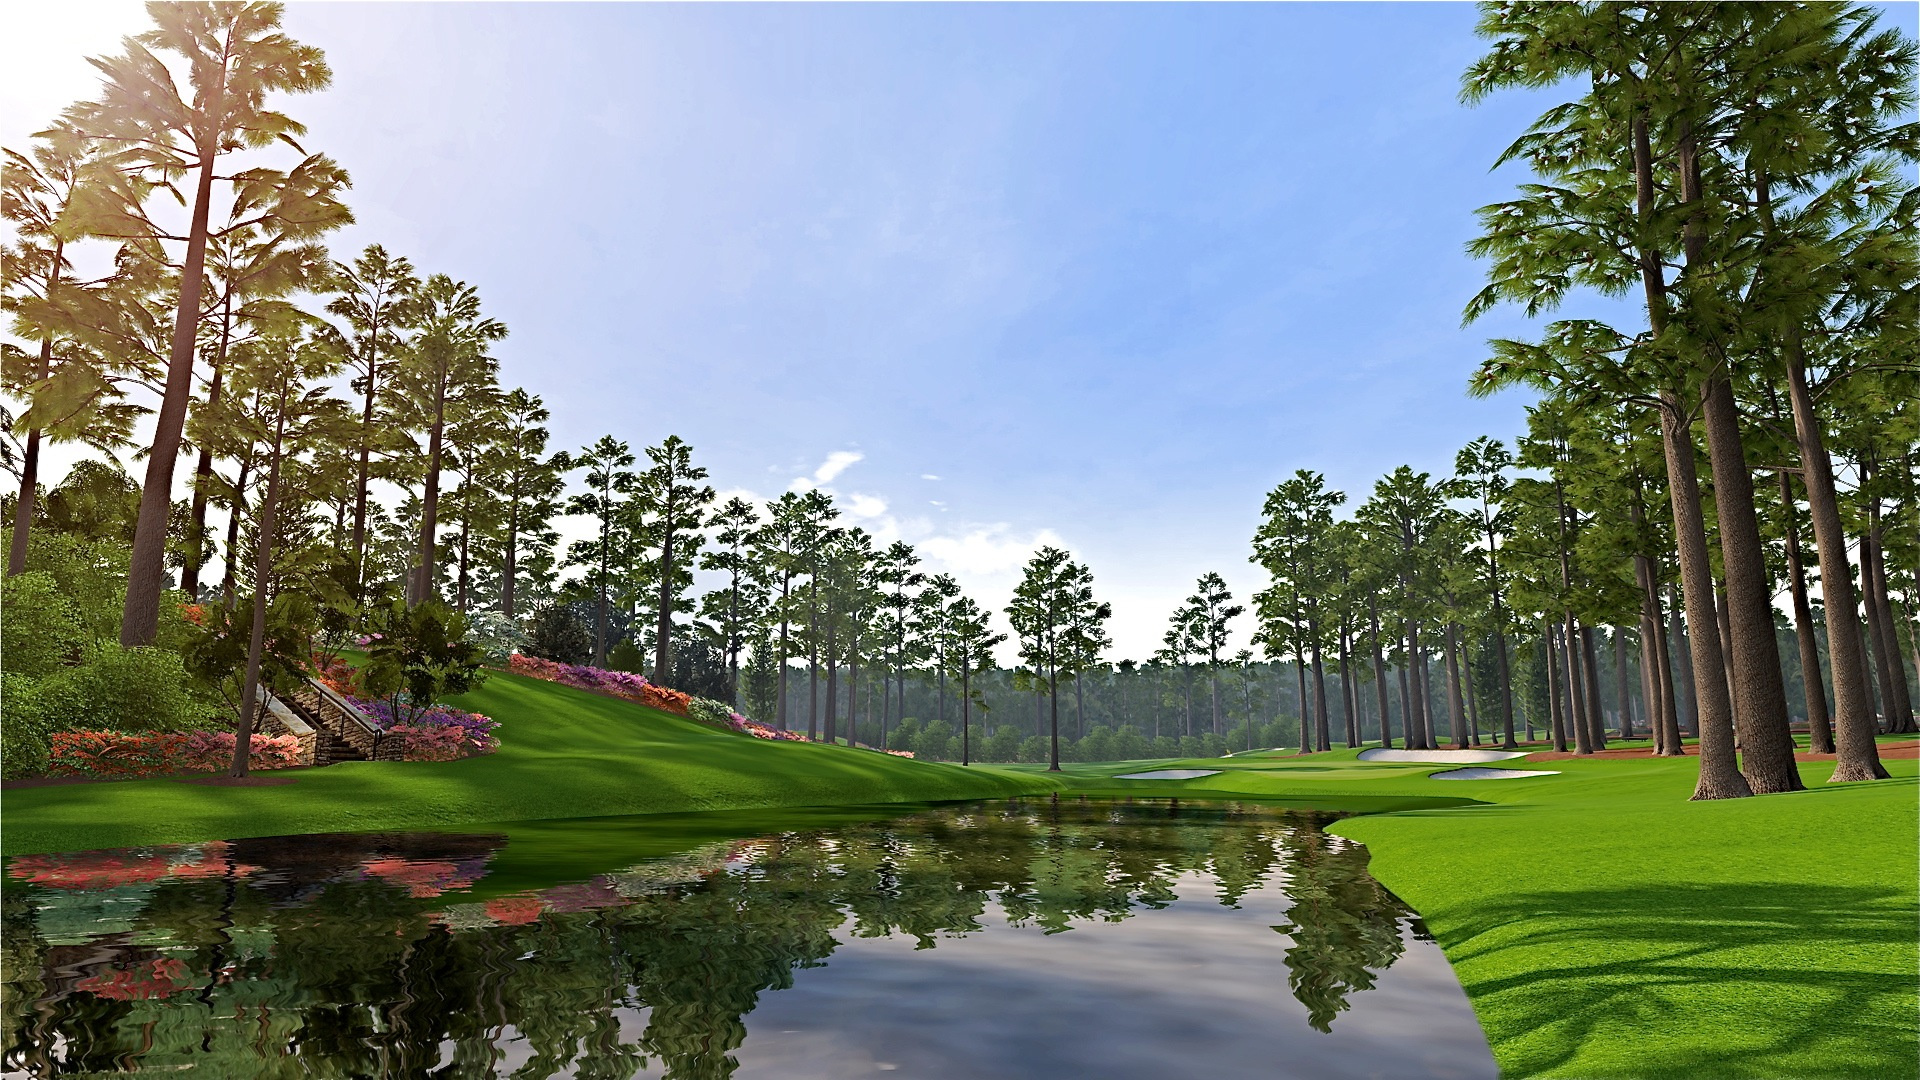 Augusta national wallpaper wallpapersafari for Augusta national wall mural